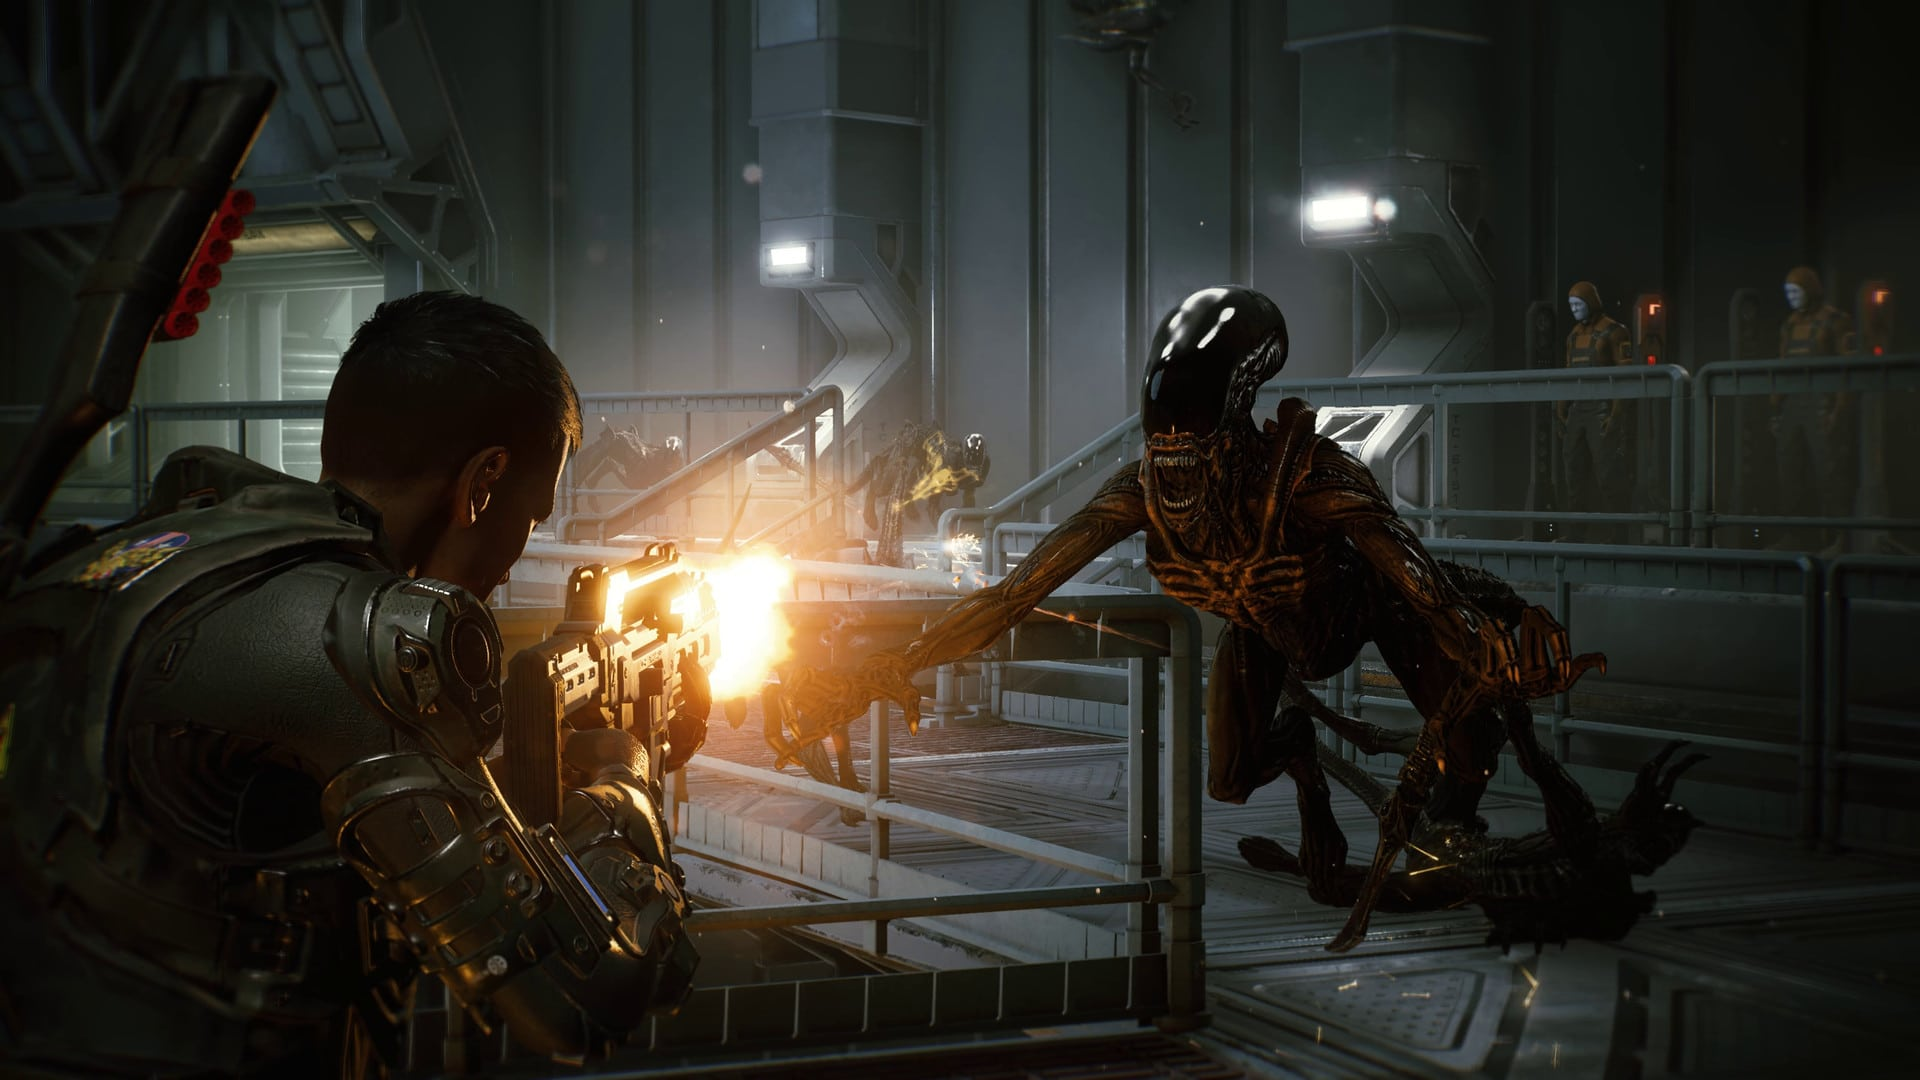 video game Aliens: Fireteam Elite is the best IP / franchise lore expansion for a multimedia universe imaginable unlike Star Wars